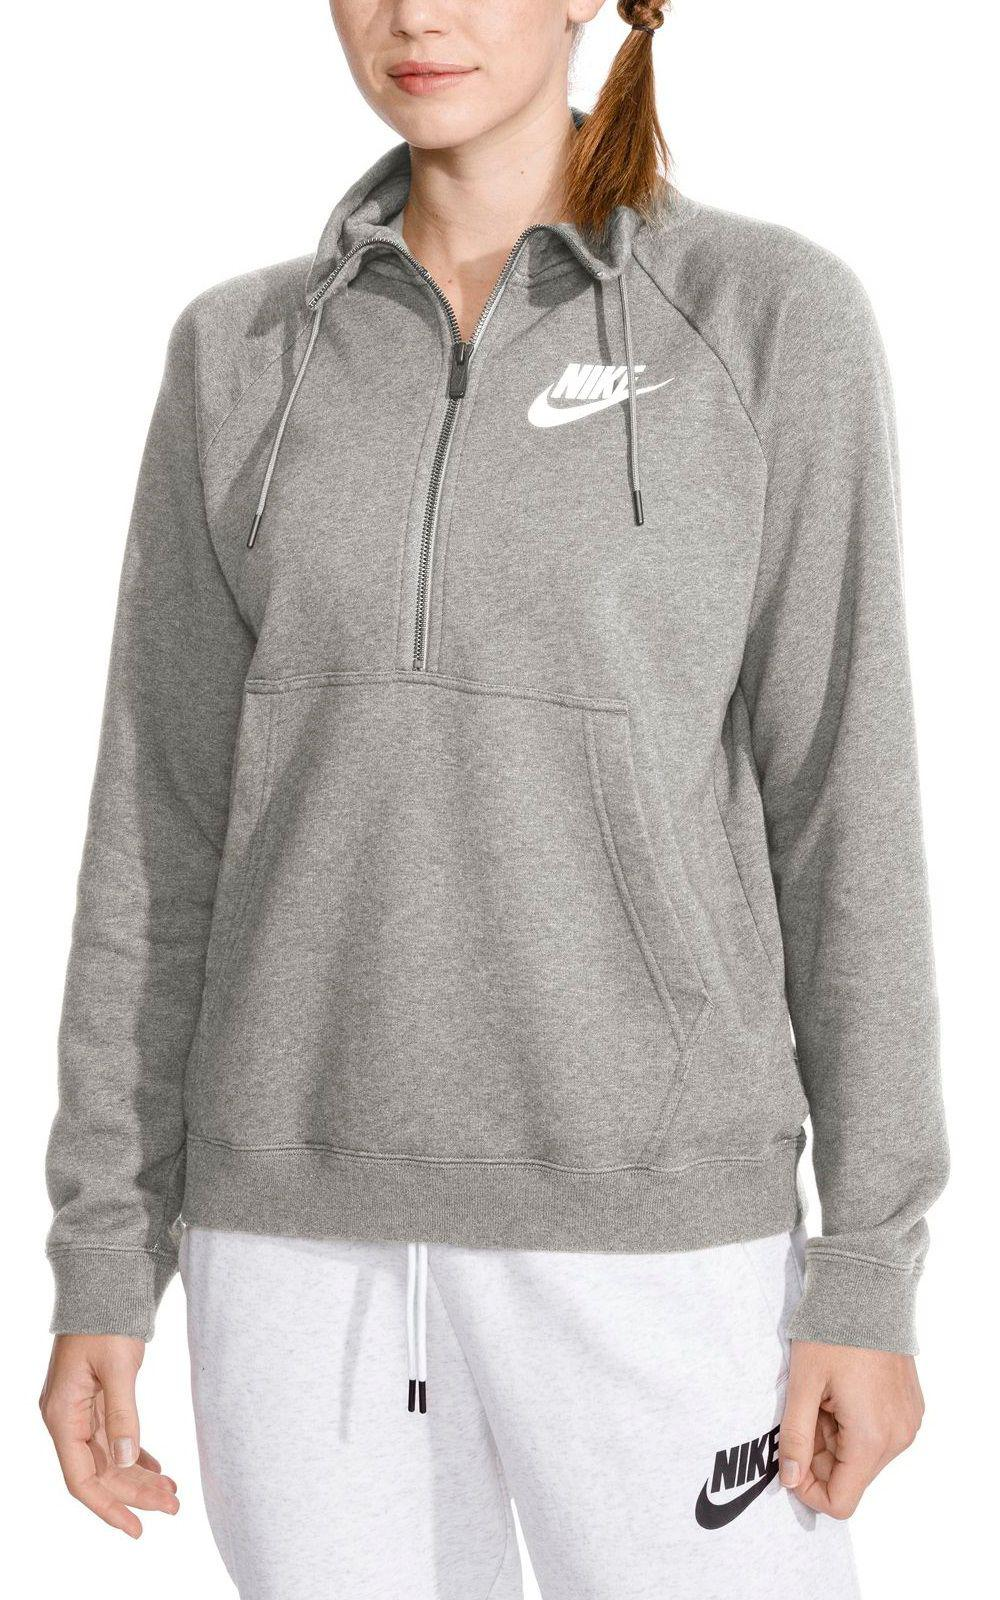 df19e2d6c9d0 Lyst - Nike Sportswear Rally Half-zip Sweatshirt in Gray